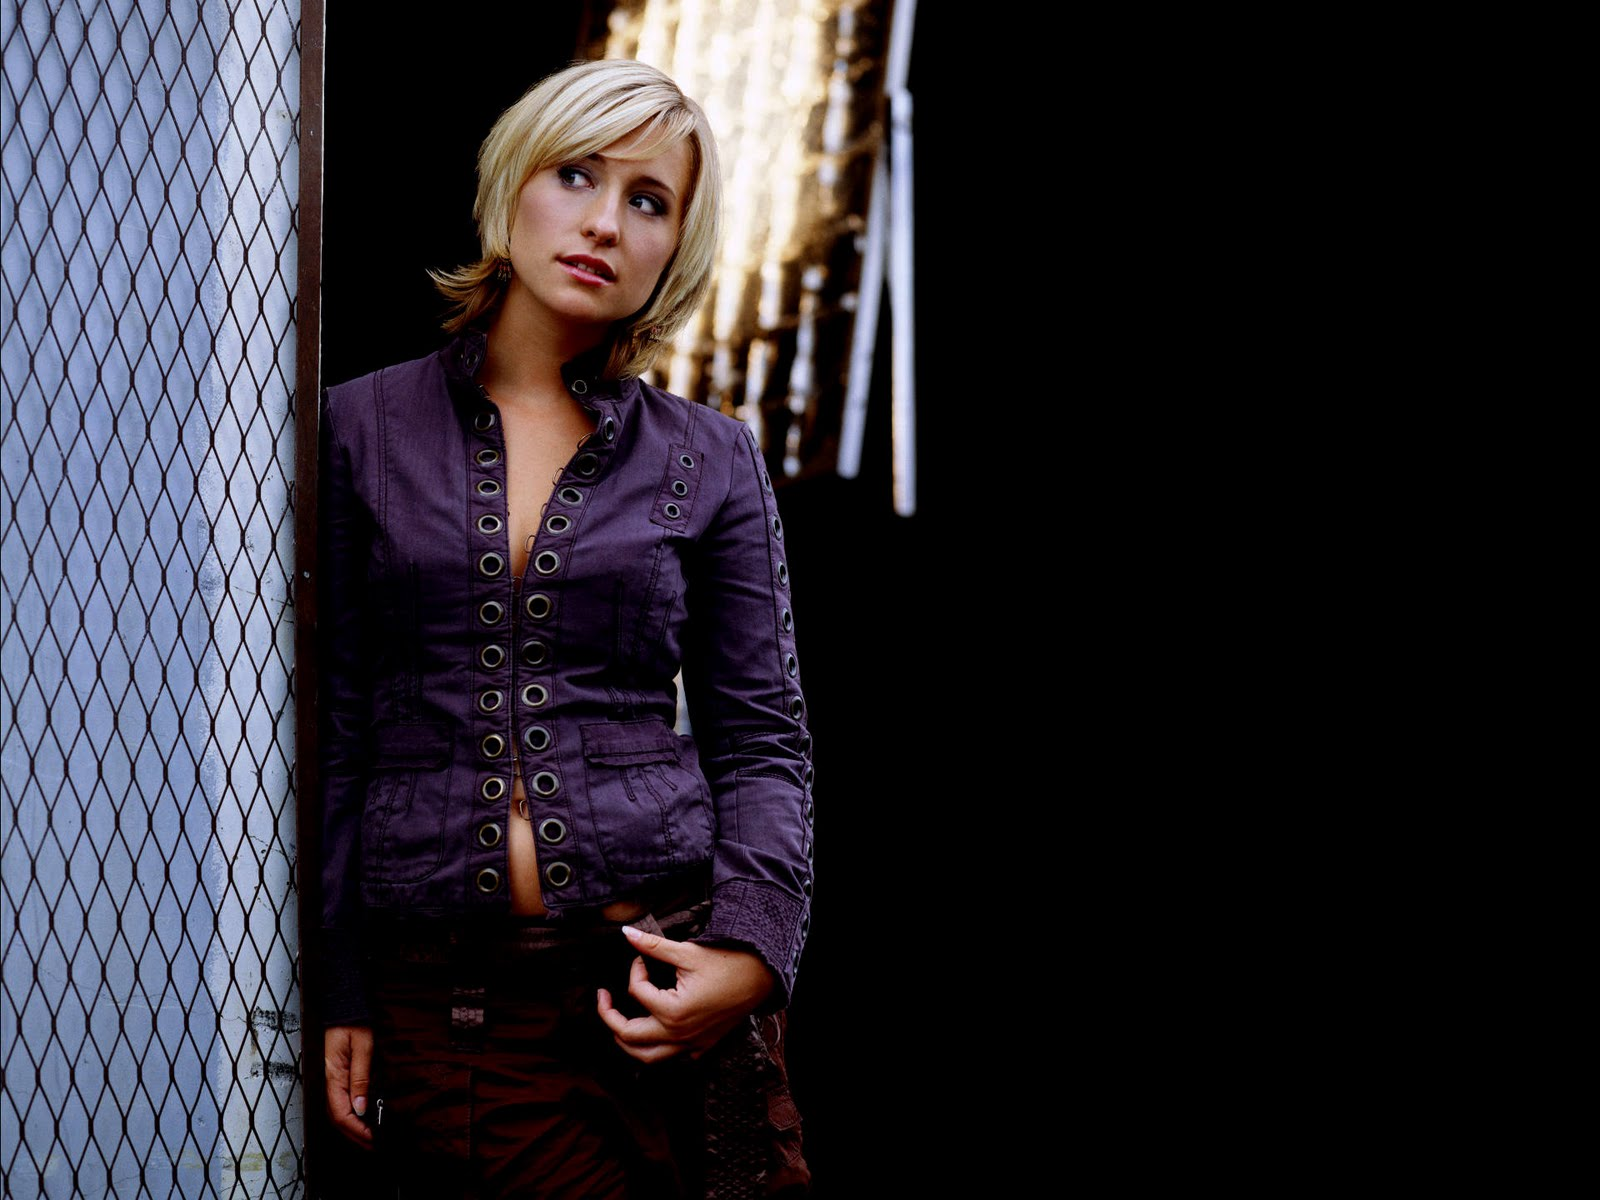 Allison Mack Hot Pictures Photo Gallery amp Wallpapers 1600x1200